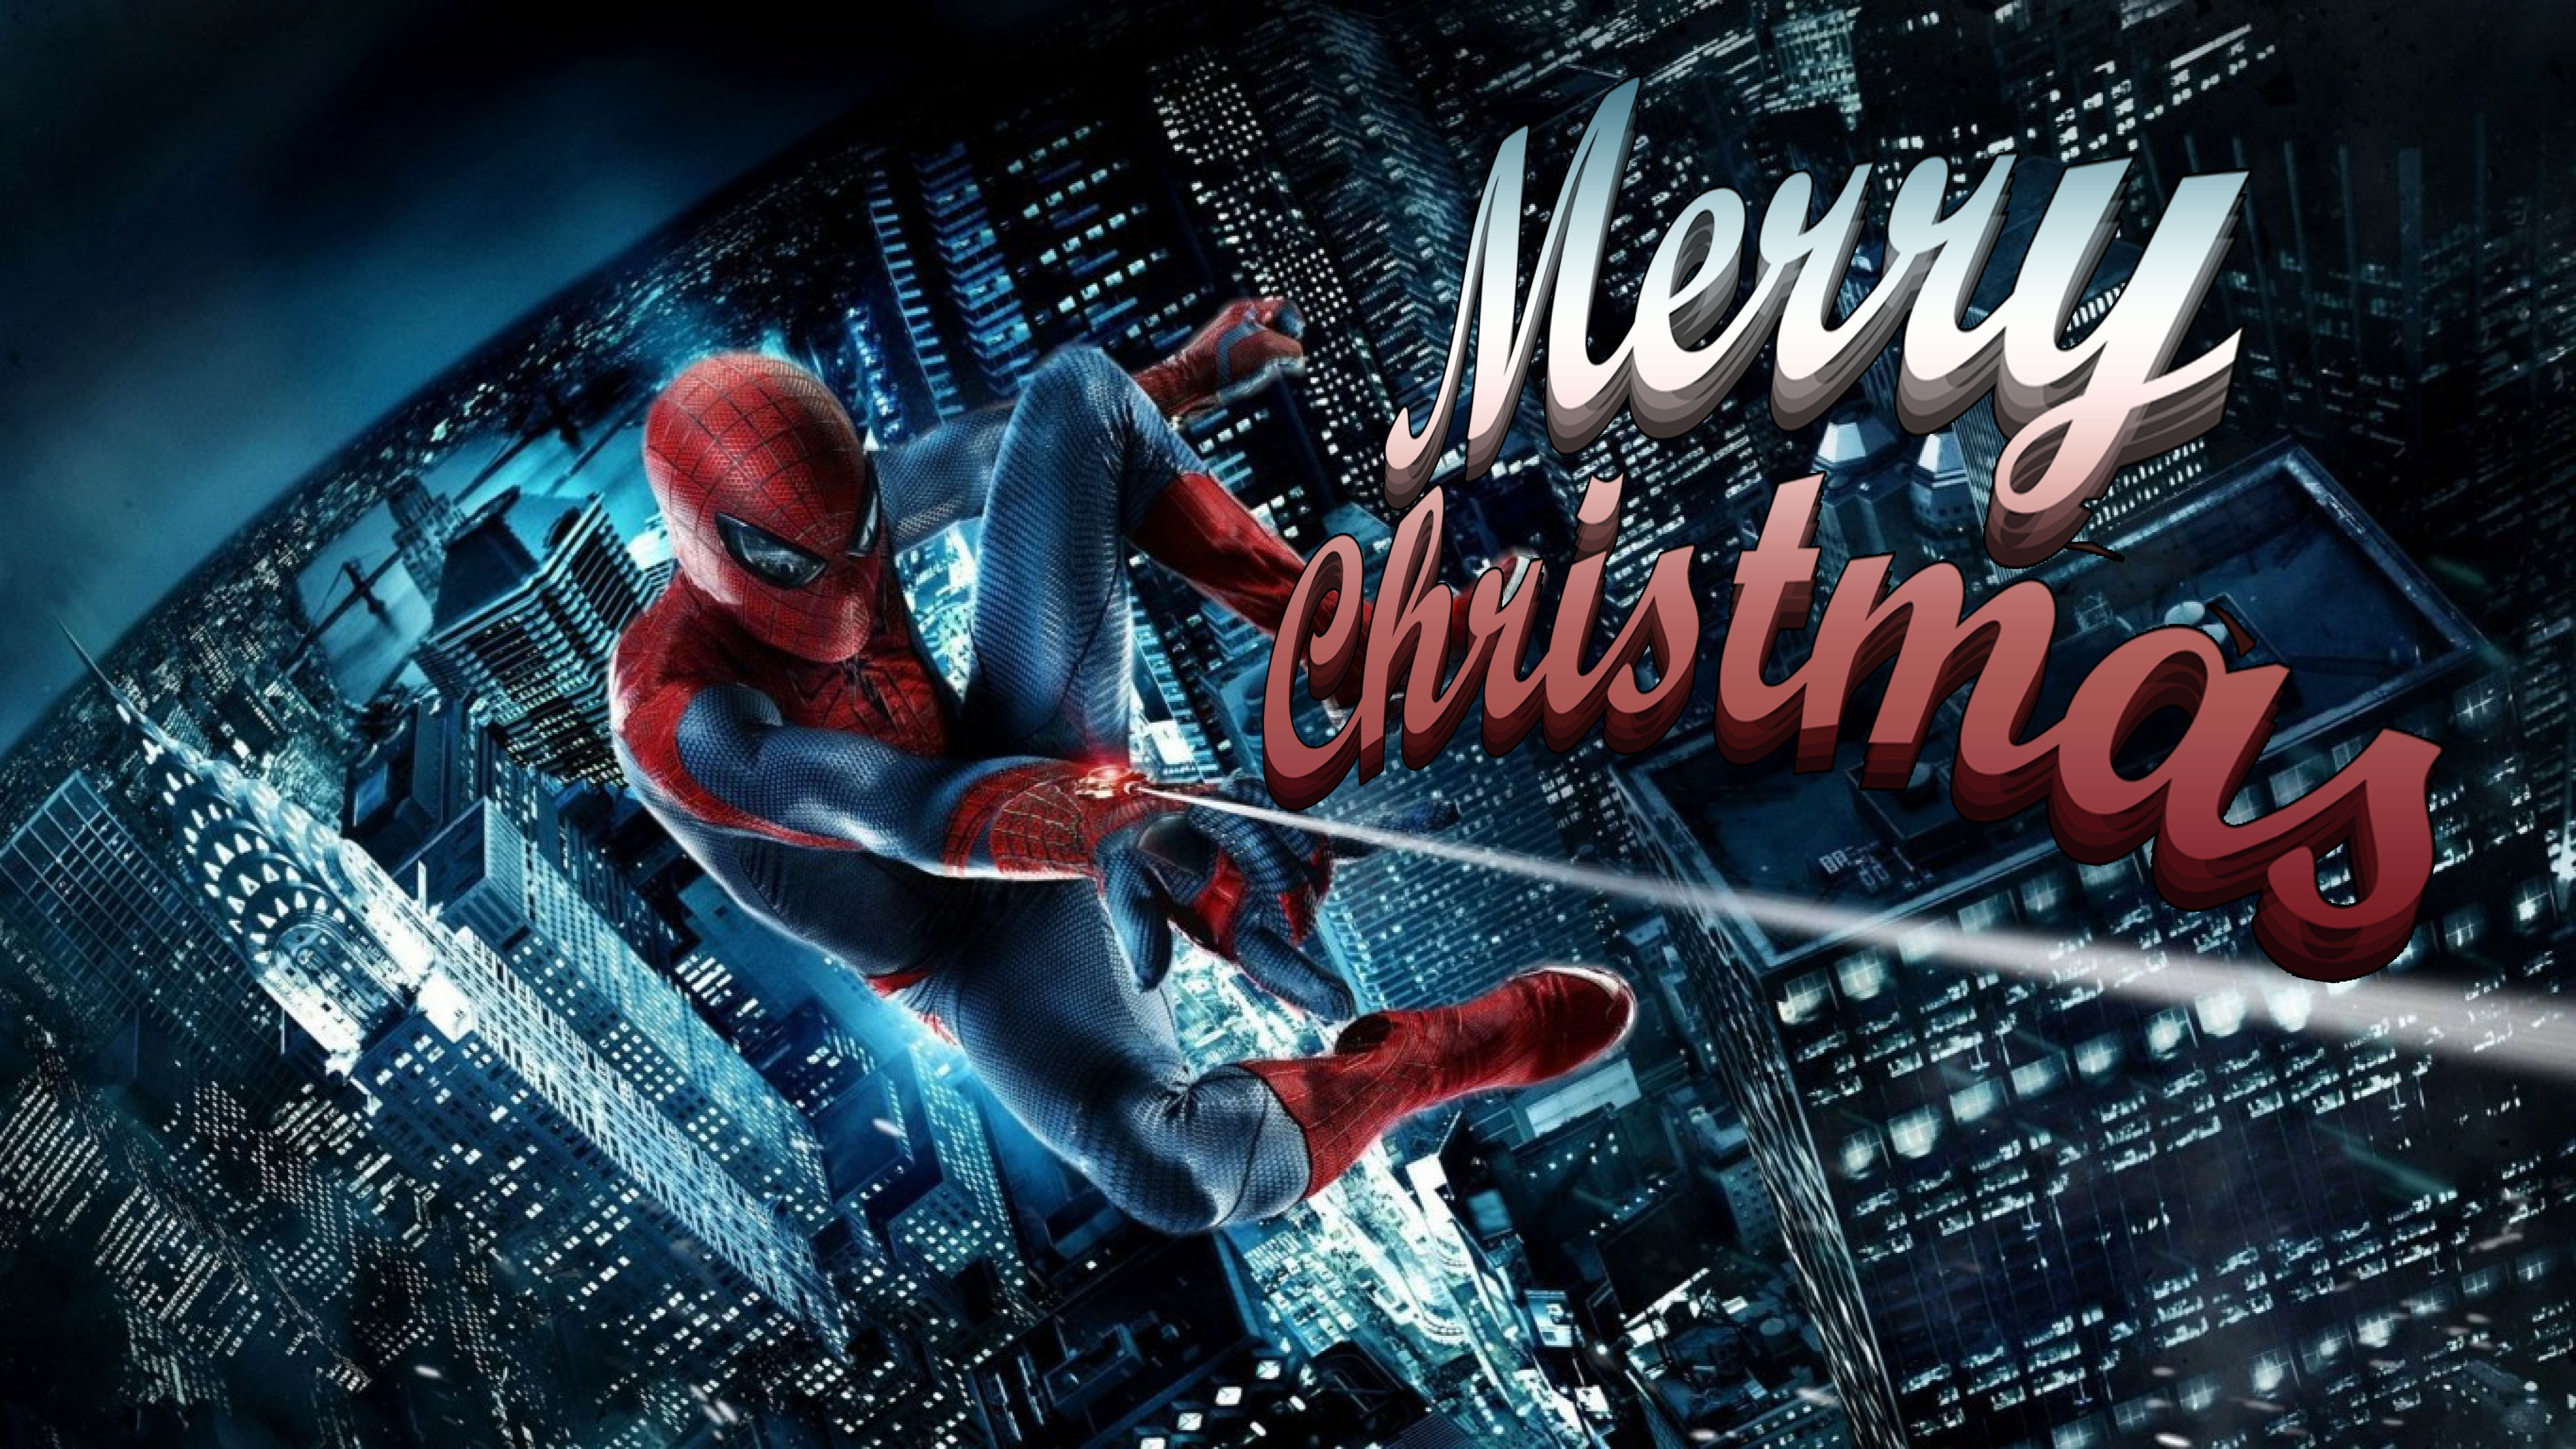 happy merry christmas greetings amazing spiderman kids ultra hd wallpaper